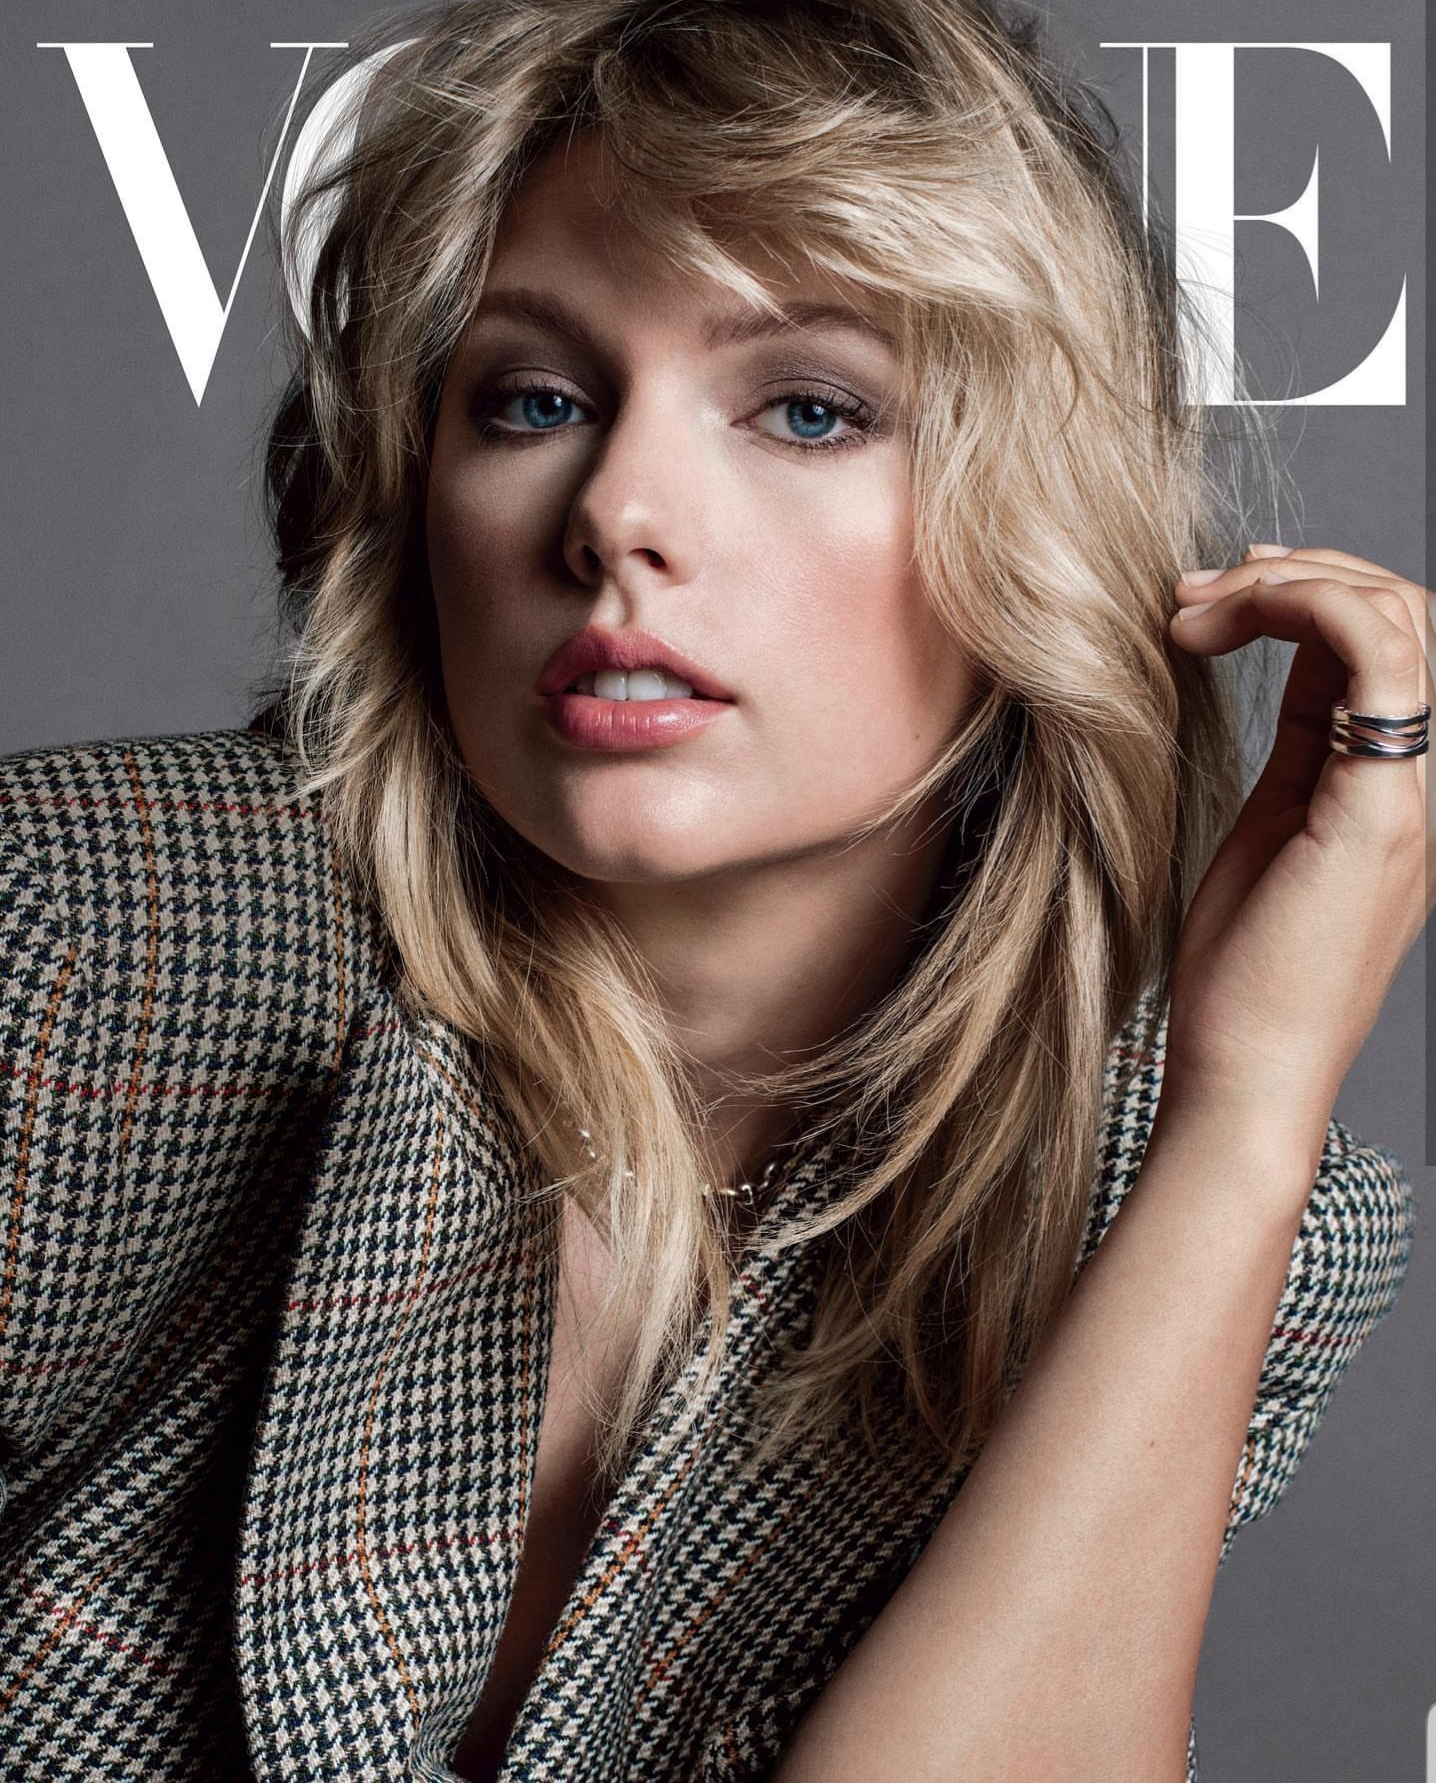 """Taylor's Vogue spread. (Photograph: Inez and Vindooh ) / Courtesy of Instagram @TaylorSwift """"Wanted to thank  @abbyaguirre  for writing such a thoughtful piece and for diving into my pastel cryptic world of hints, Easter eggs, and numerology. We also talked about sexism, equality, and all things Lover. I ate an entire cheese plate by myself. On stands soon-ish."""""""